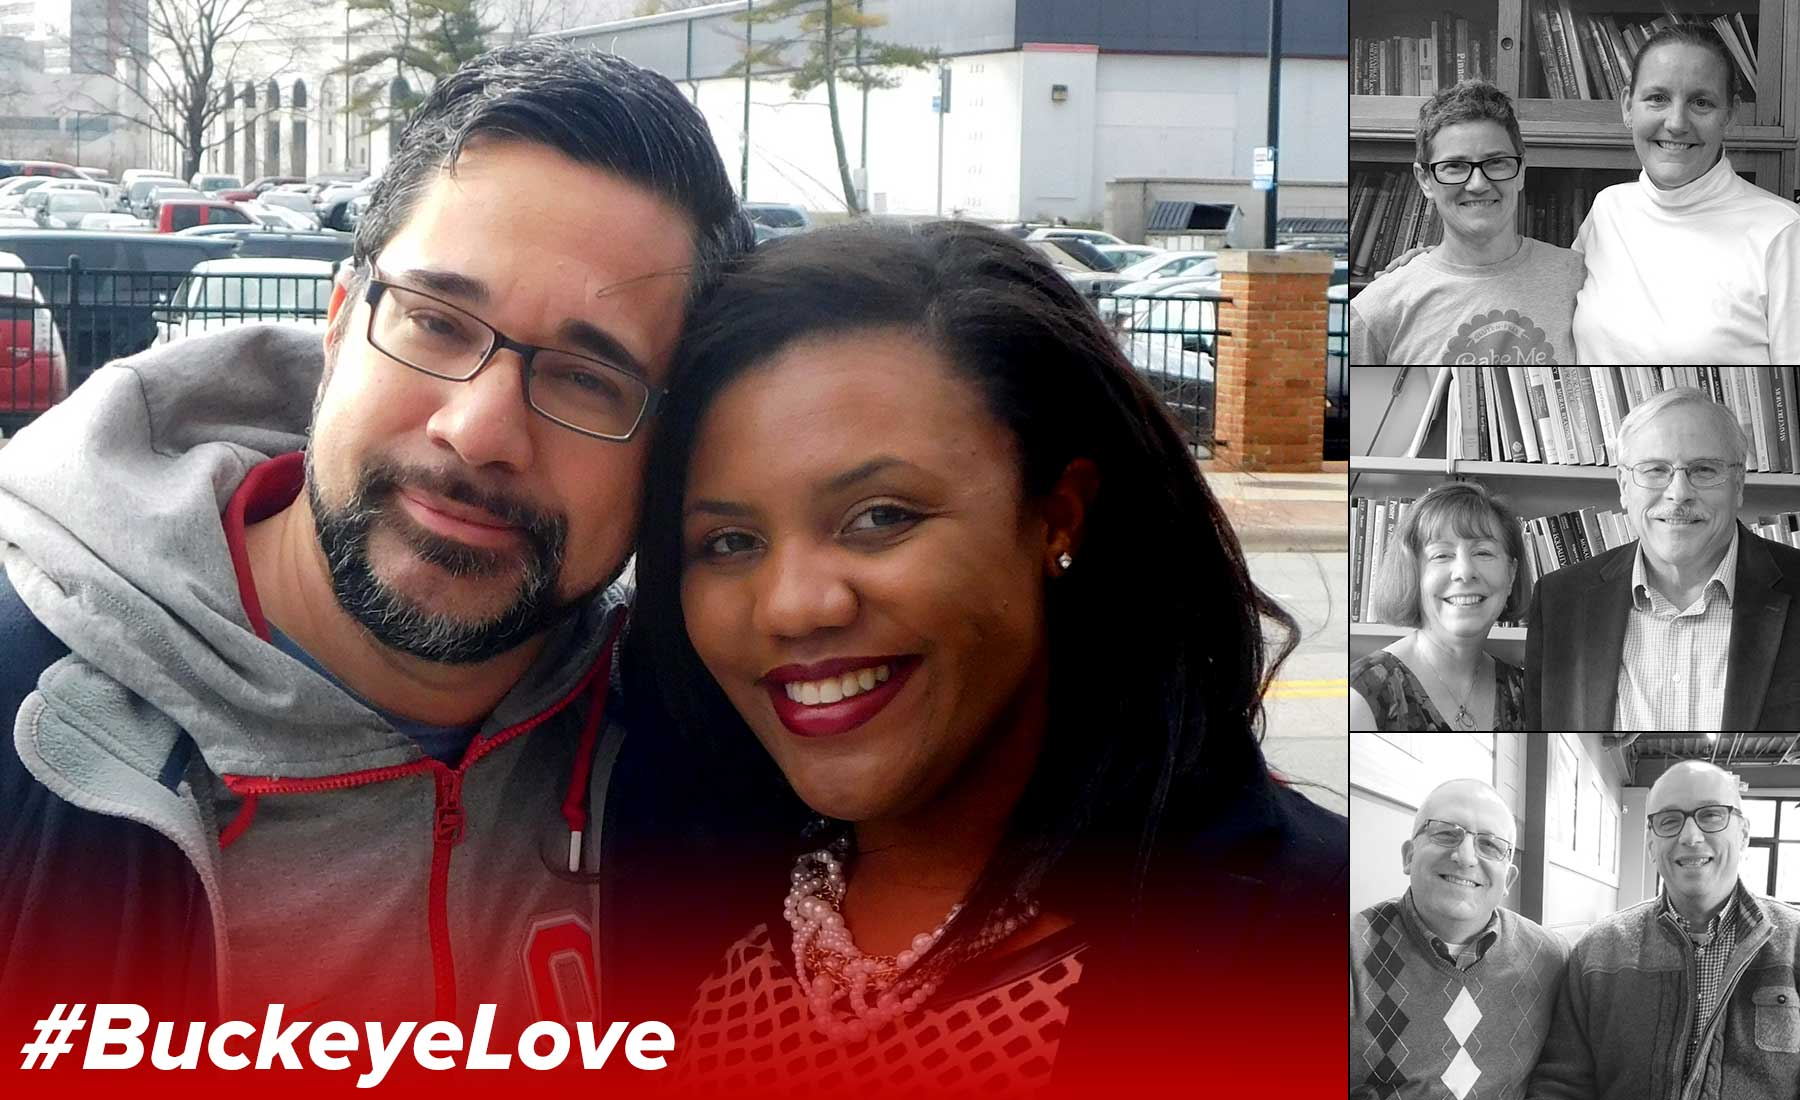 Ramsey and Shantay Piazza, the featured couple in this issue of the BuckeyeLove series